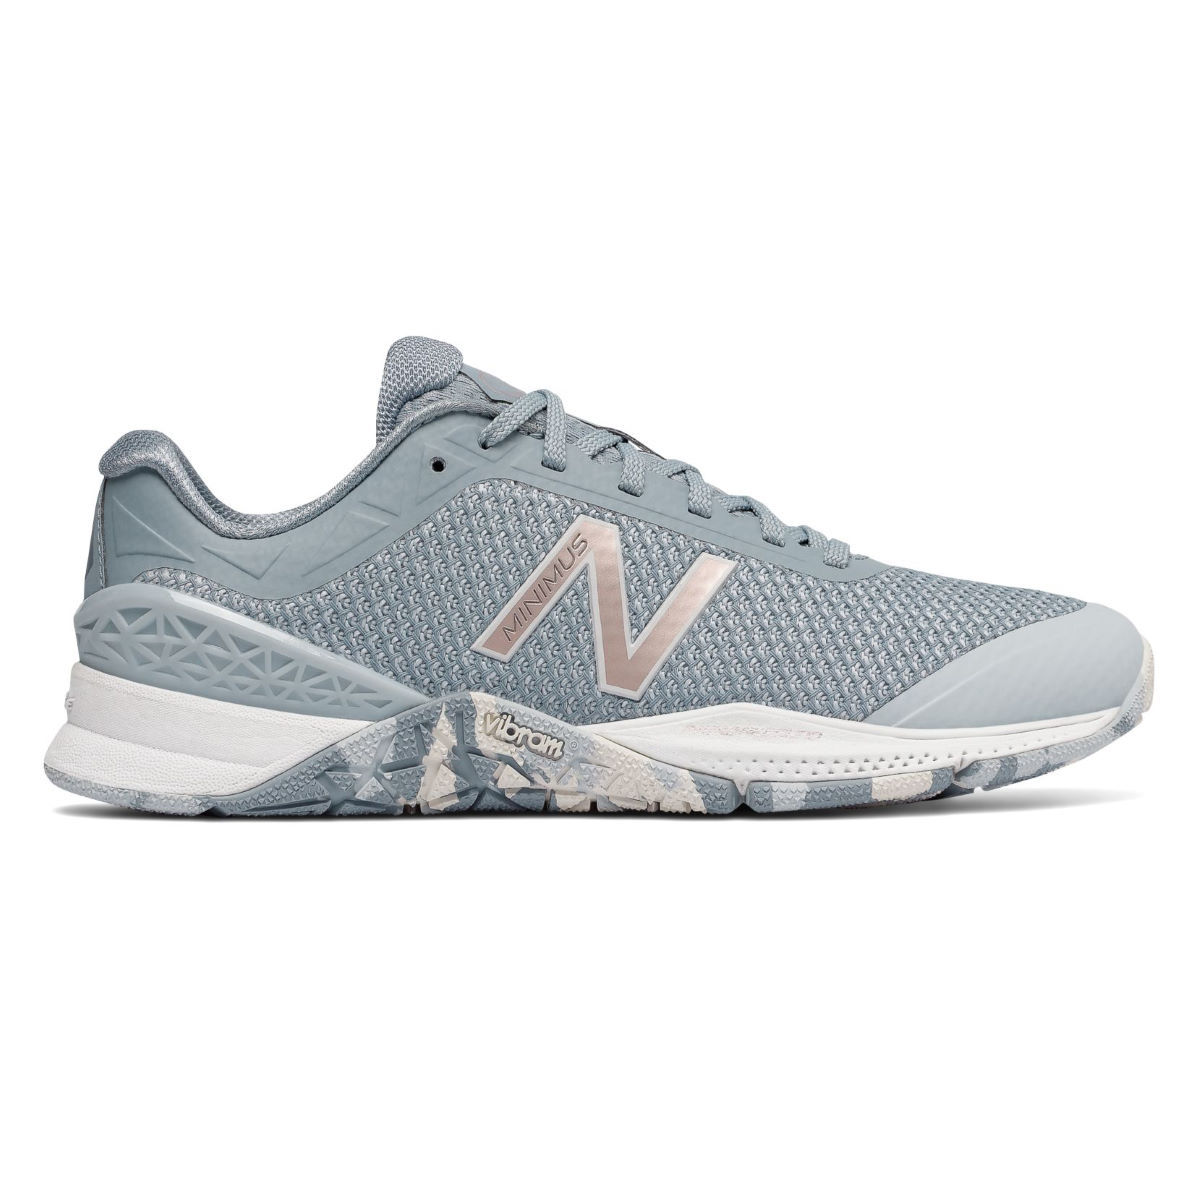 New Balance Women's WX40 v1 Shoes - Zapatillas de entrenamiento